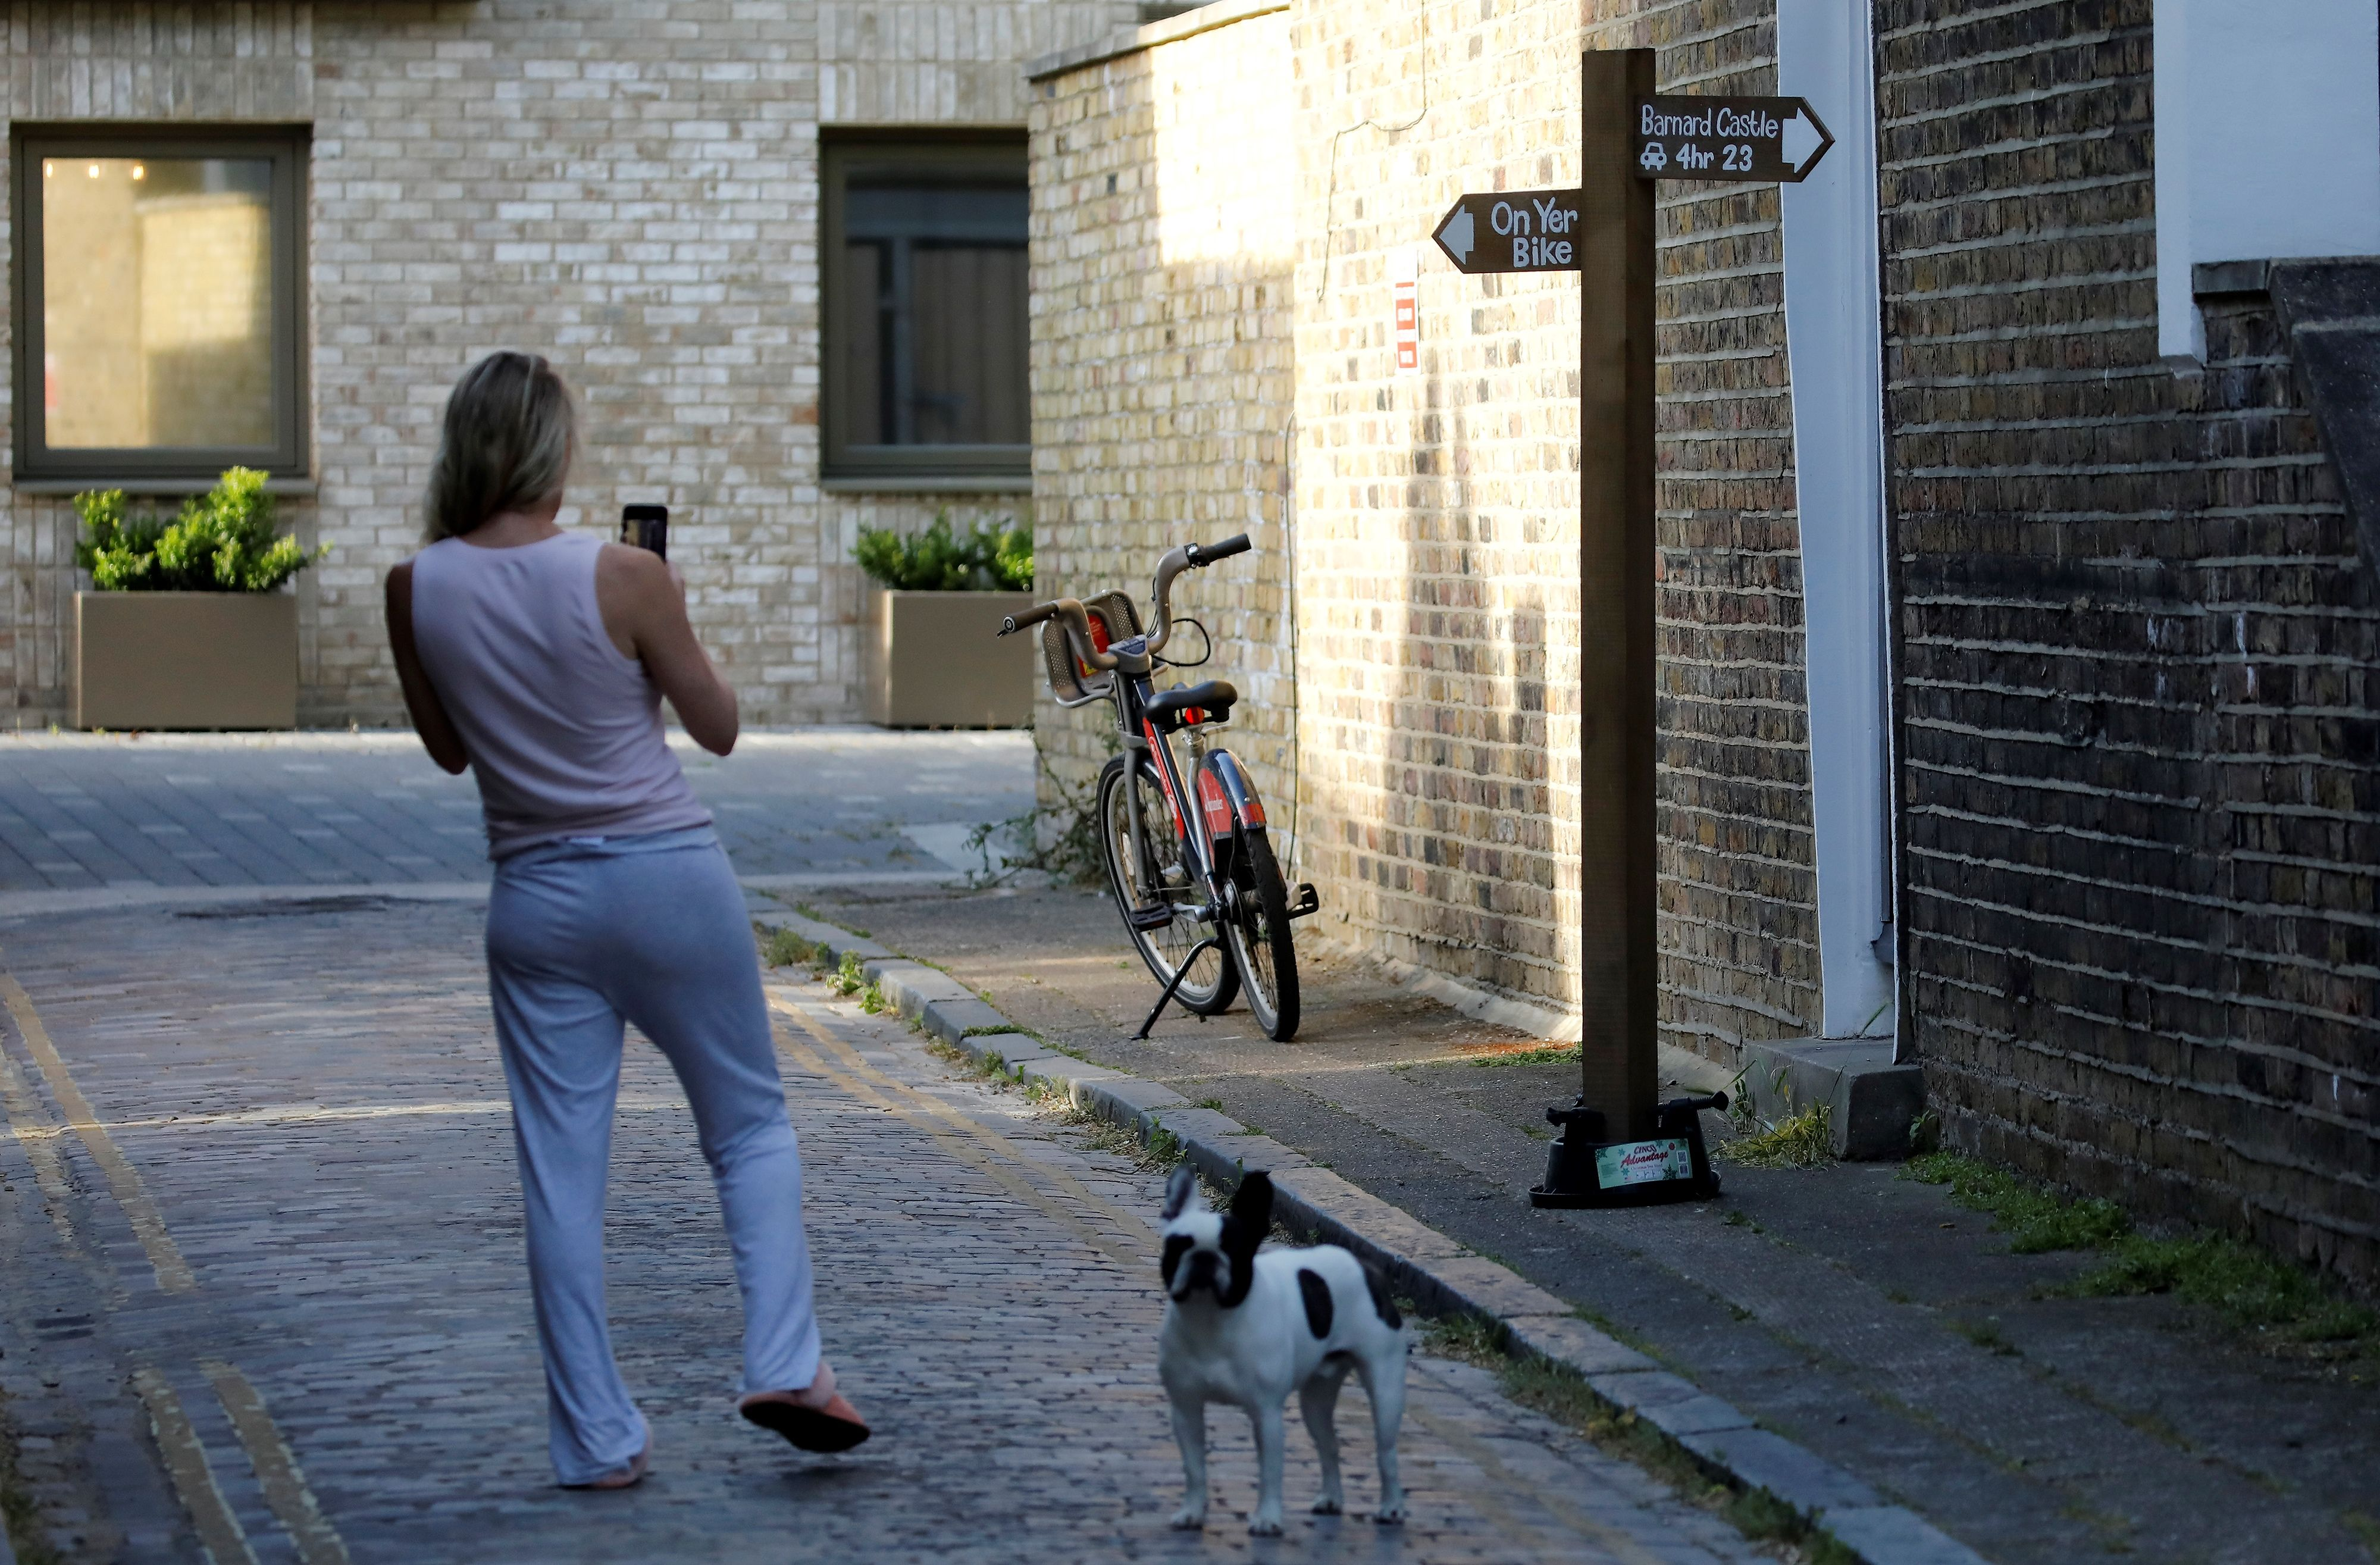 """A woman stands with a dog as she photographs a mock signpost, giving directions to Barnard Castle, southwest of Durham, placed near to the home of 10 Downing Street special advisor Dominic Cummings, in London on May 25, 2020 following his admission he drove and stayed in Durham during the coronavirus lockdown. - British Prime Minister Boris Johnson's top aide Dominic Cummings defied calls to resign on Monday over allegations that he broke coronavirus rules and undermined the government's response to the health crisis. Cummings told reporters that he acted """"reasonably and legally"""" when he drove across the country with his wife while she was suffering from the virus, despite official advice to stay at home. (Photo by Tolga AKMEN / AFP) (Photo by TOLGA AKMEN/AFP via Getty Images)"""